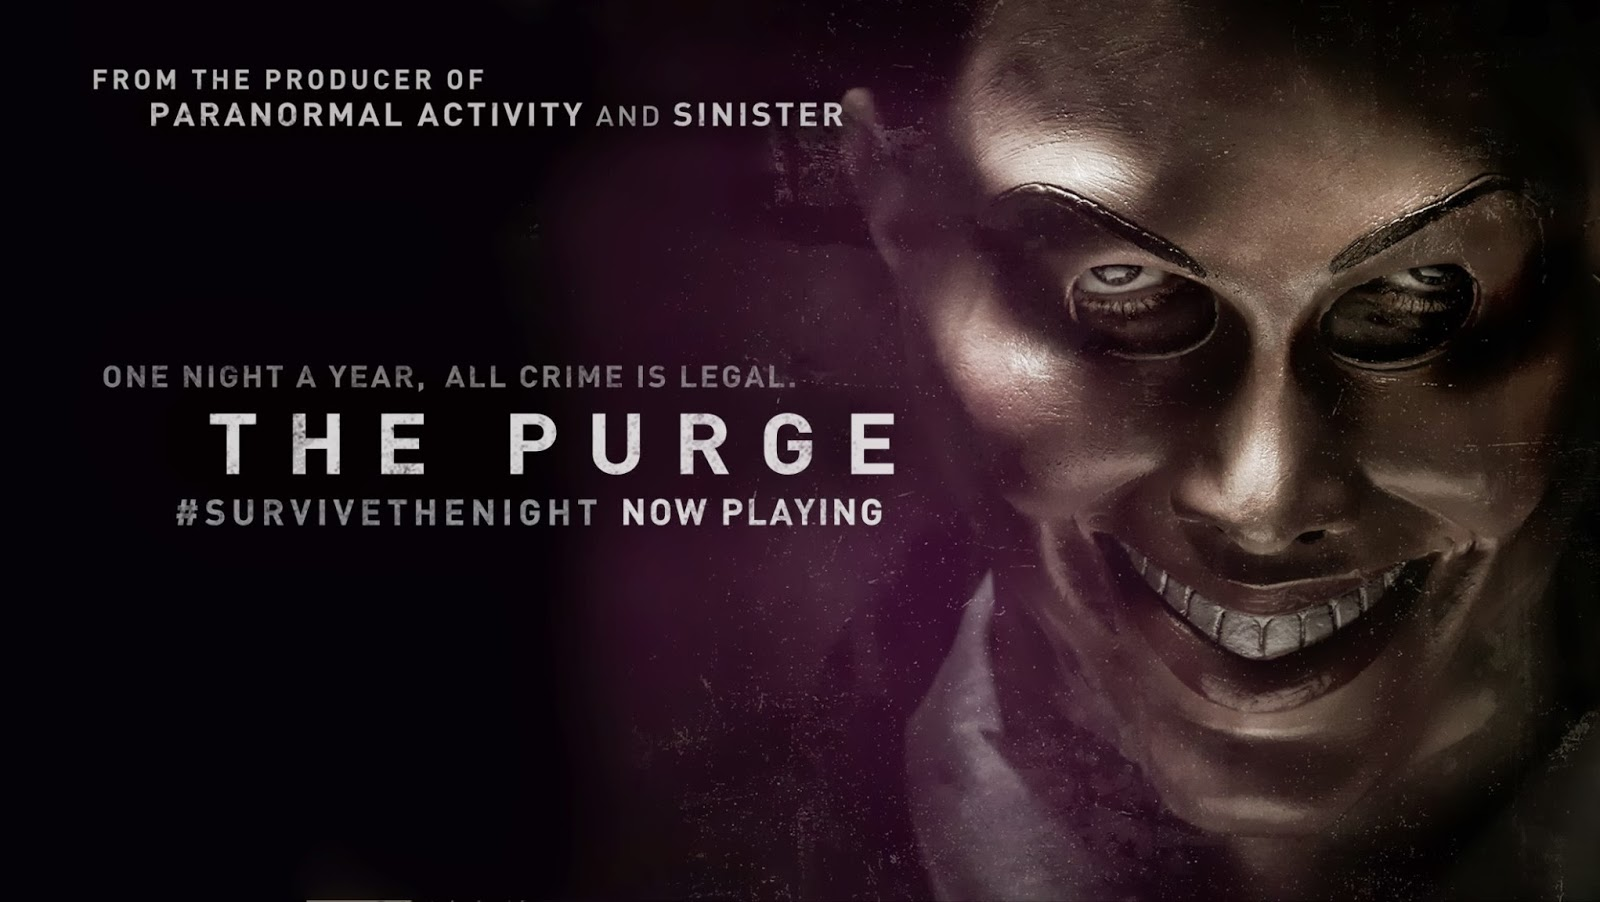 The Purge 2 Starttermin